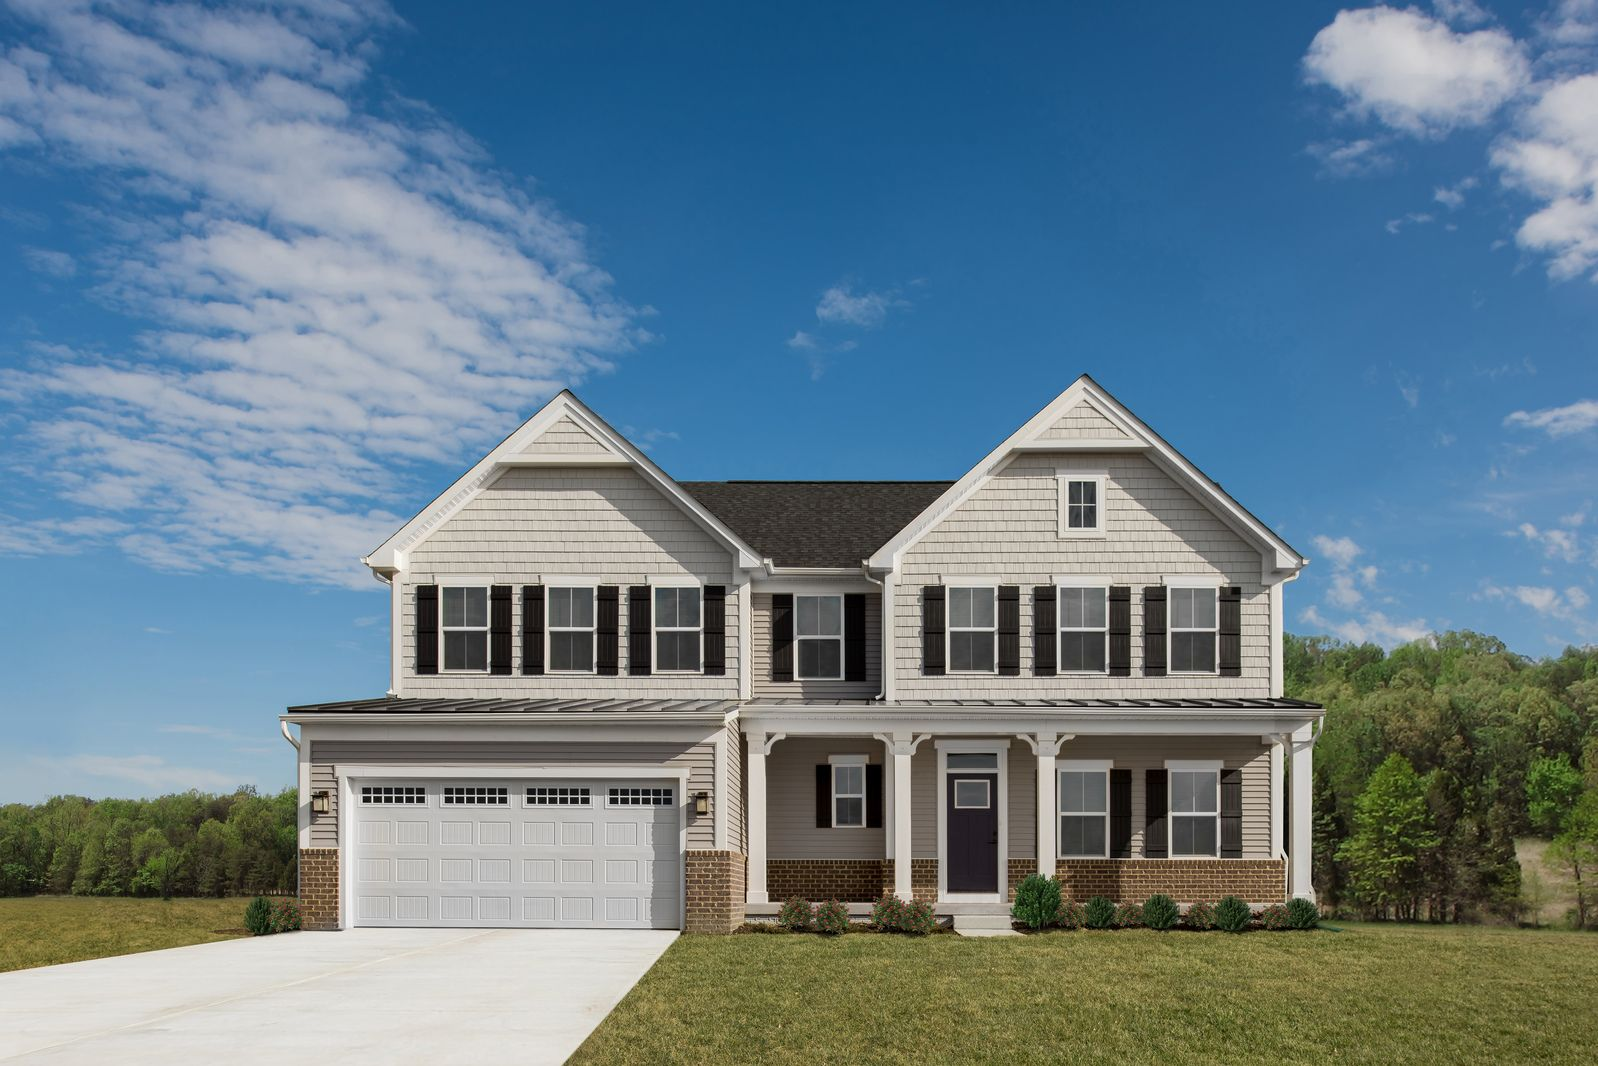 WELCOME HOME TO THE RESERVE AT WINFIELD FARM:Only cul-de-sac homesites with tree-lined views and best highway access in North Ridgeville! Ranch and 2-story homes, and community pool.Click here to schedule your visit today!